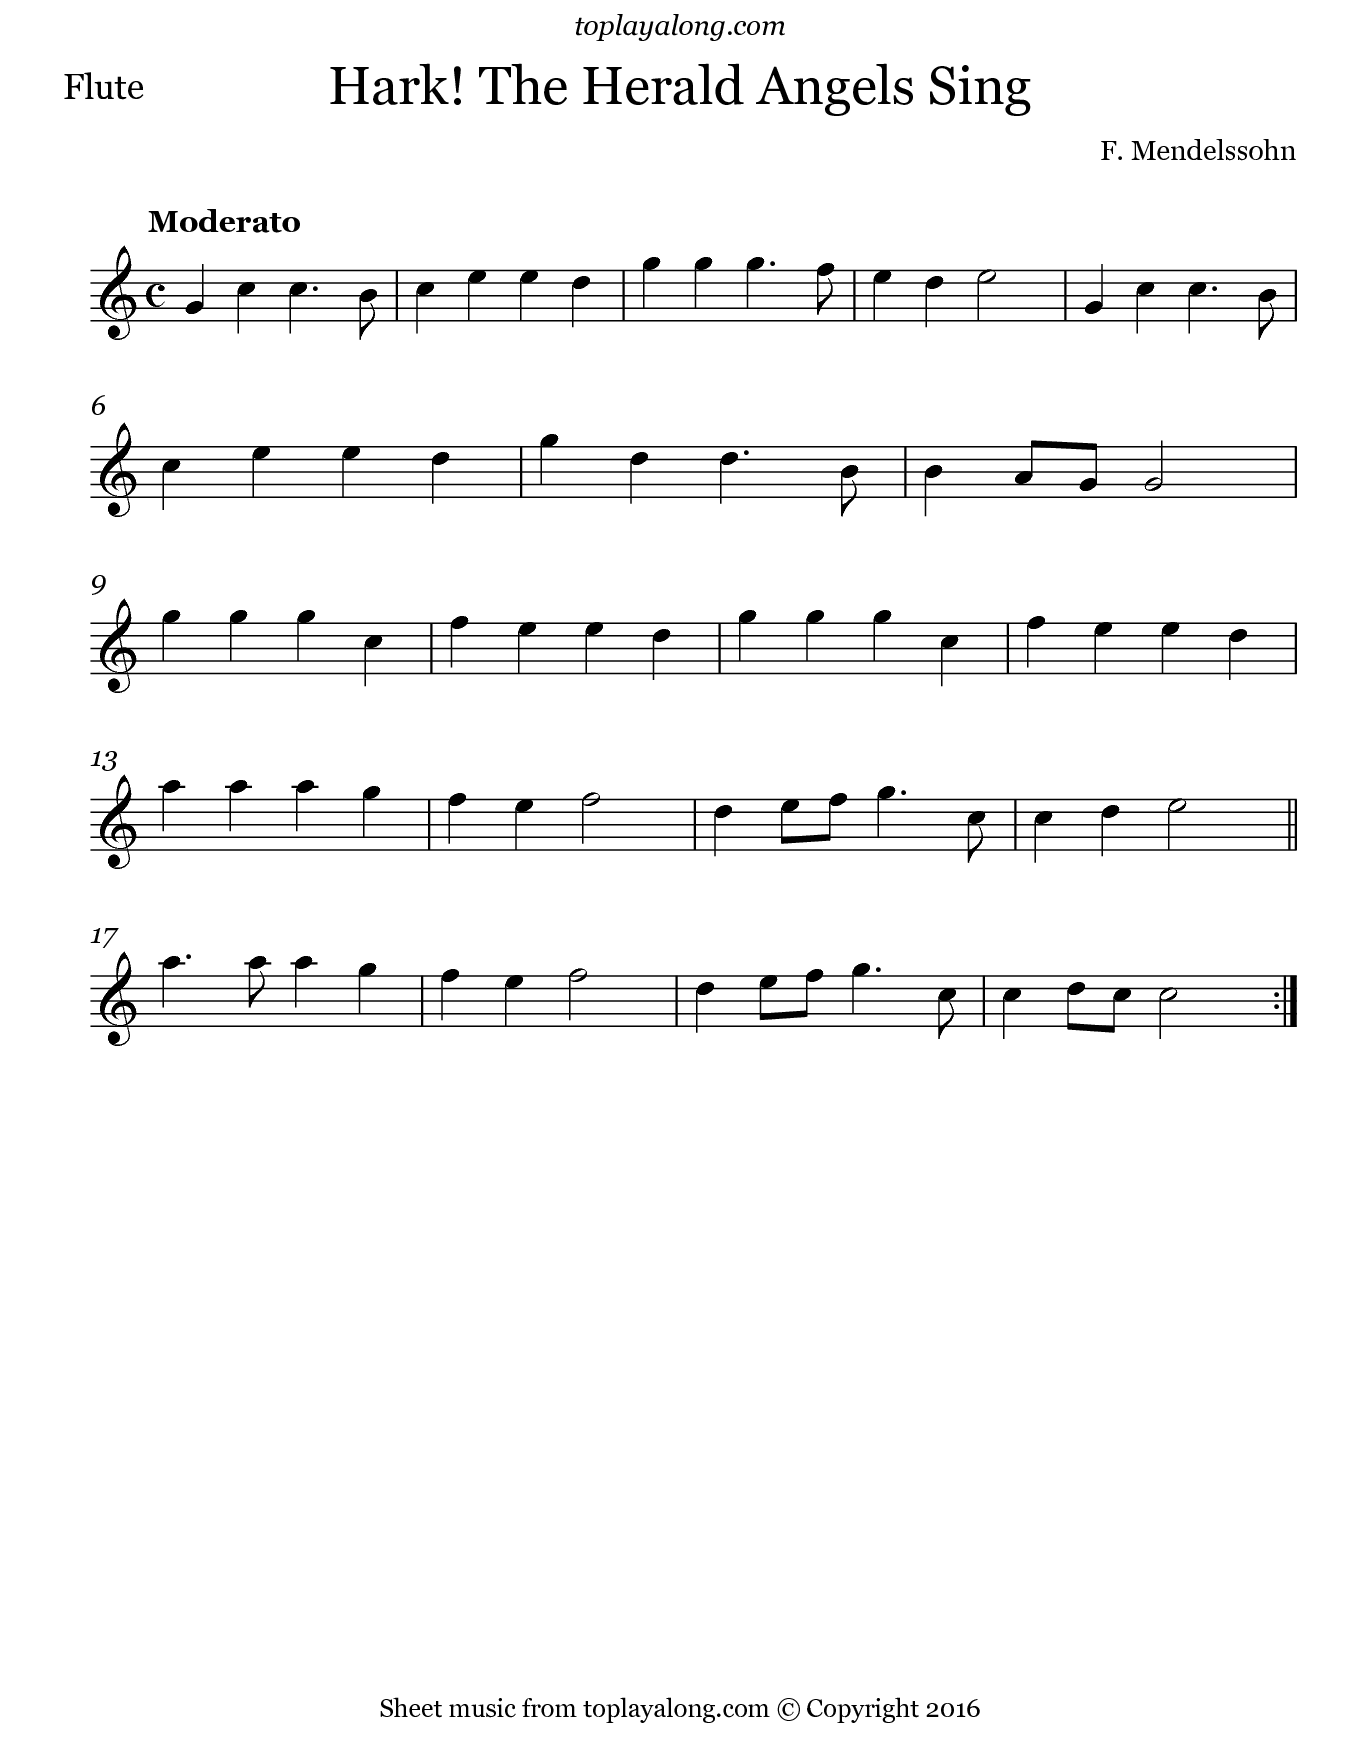 Hark! The Herald Angels Sing by Mendelssohn. Sheet music for Flute, page 1.